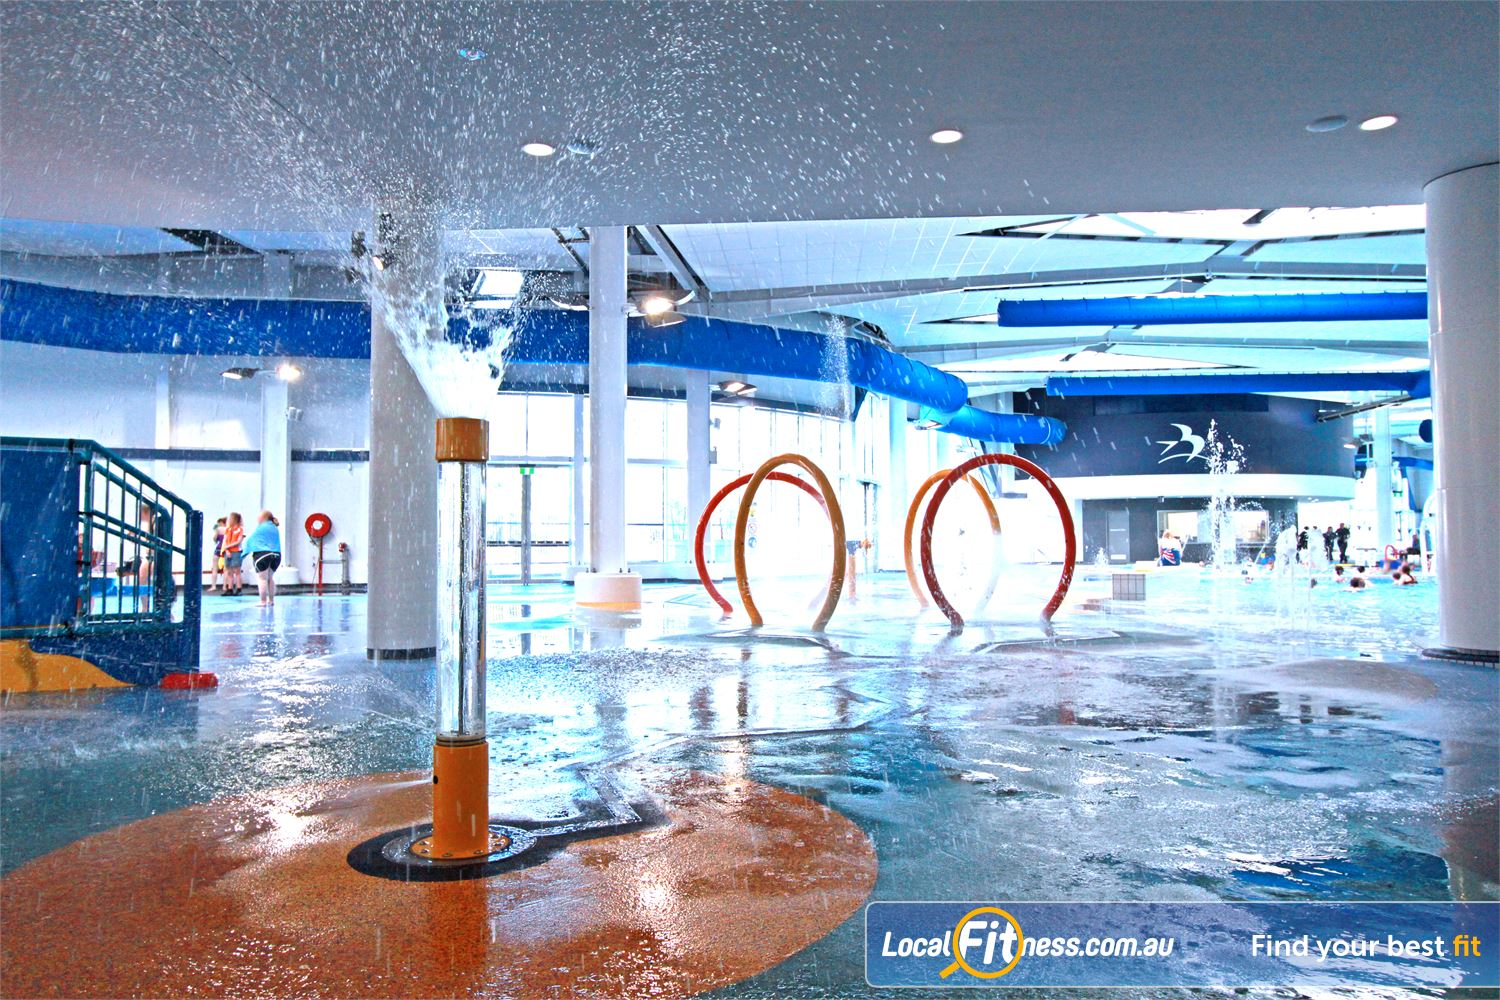 WaterMarc Aquatic & Leisure Centre Near Saint Helena Water sprays, geysers and waterfalls.